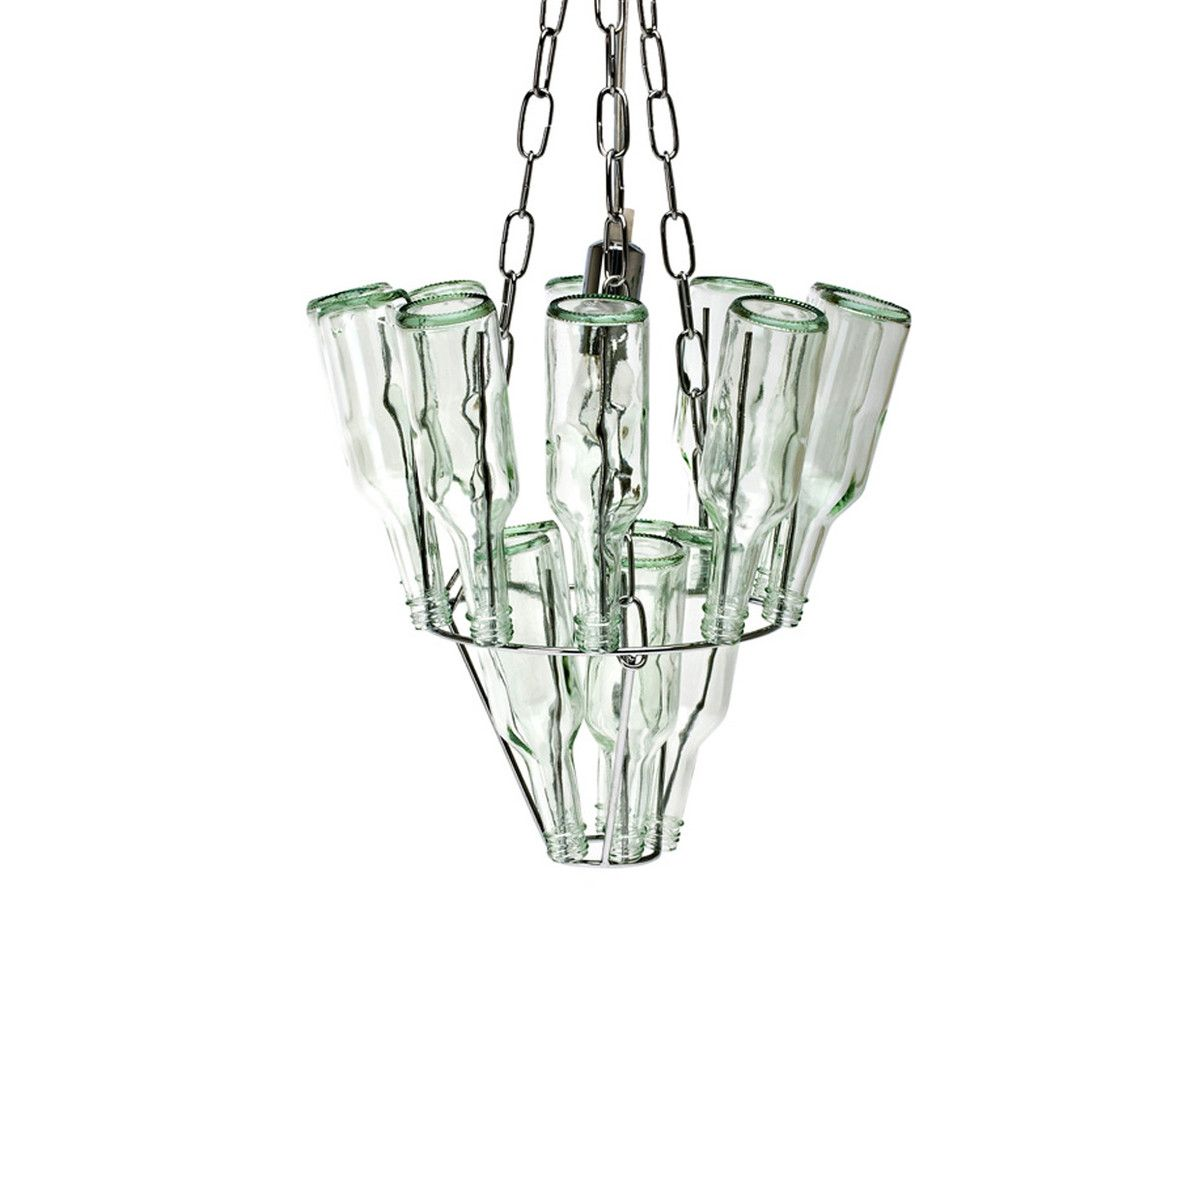 Eufab small bottle chandelier stuff i likewantneed buy leitmotiv mini bottle chandelier in chrome from our chandeliers range at tesco direct we stock a great range of products at everyday prices arubaitofo Image collections